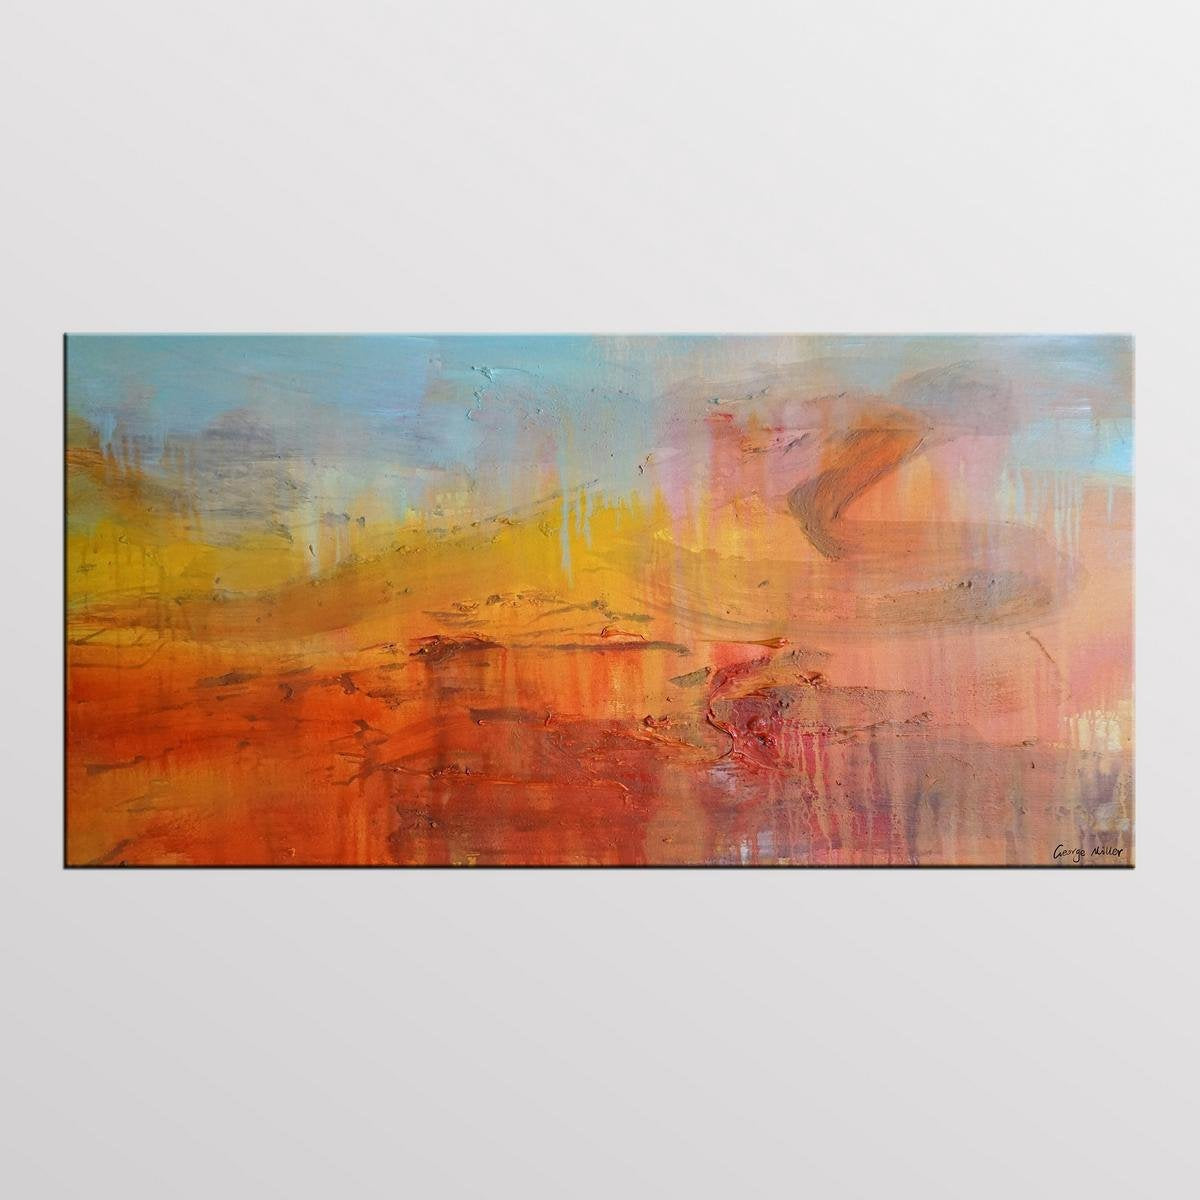 Abstract Painting, Oil Painting, Canvas Painting, Oil Painting Original, Bathroom Art, Abstract Art, Modern Painting, Painting Abstract